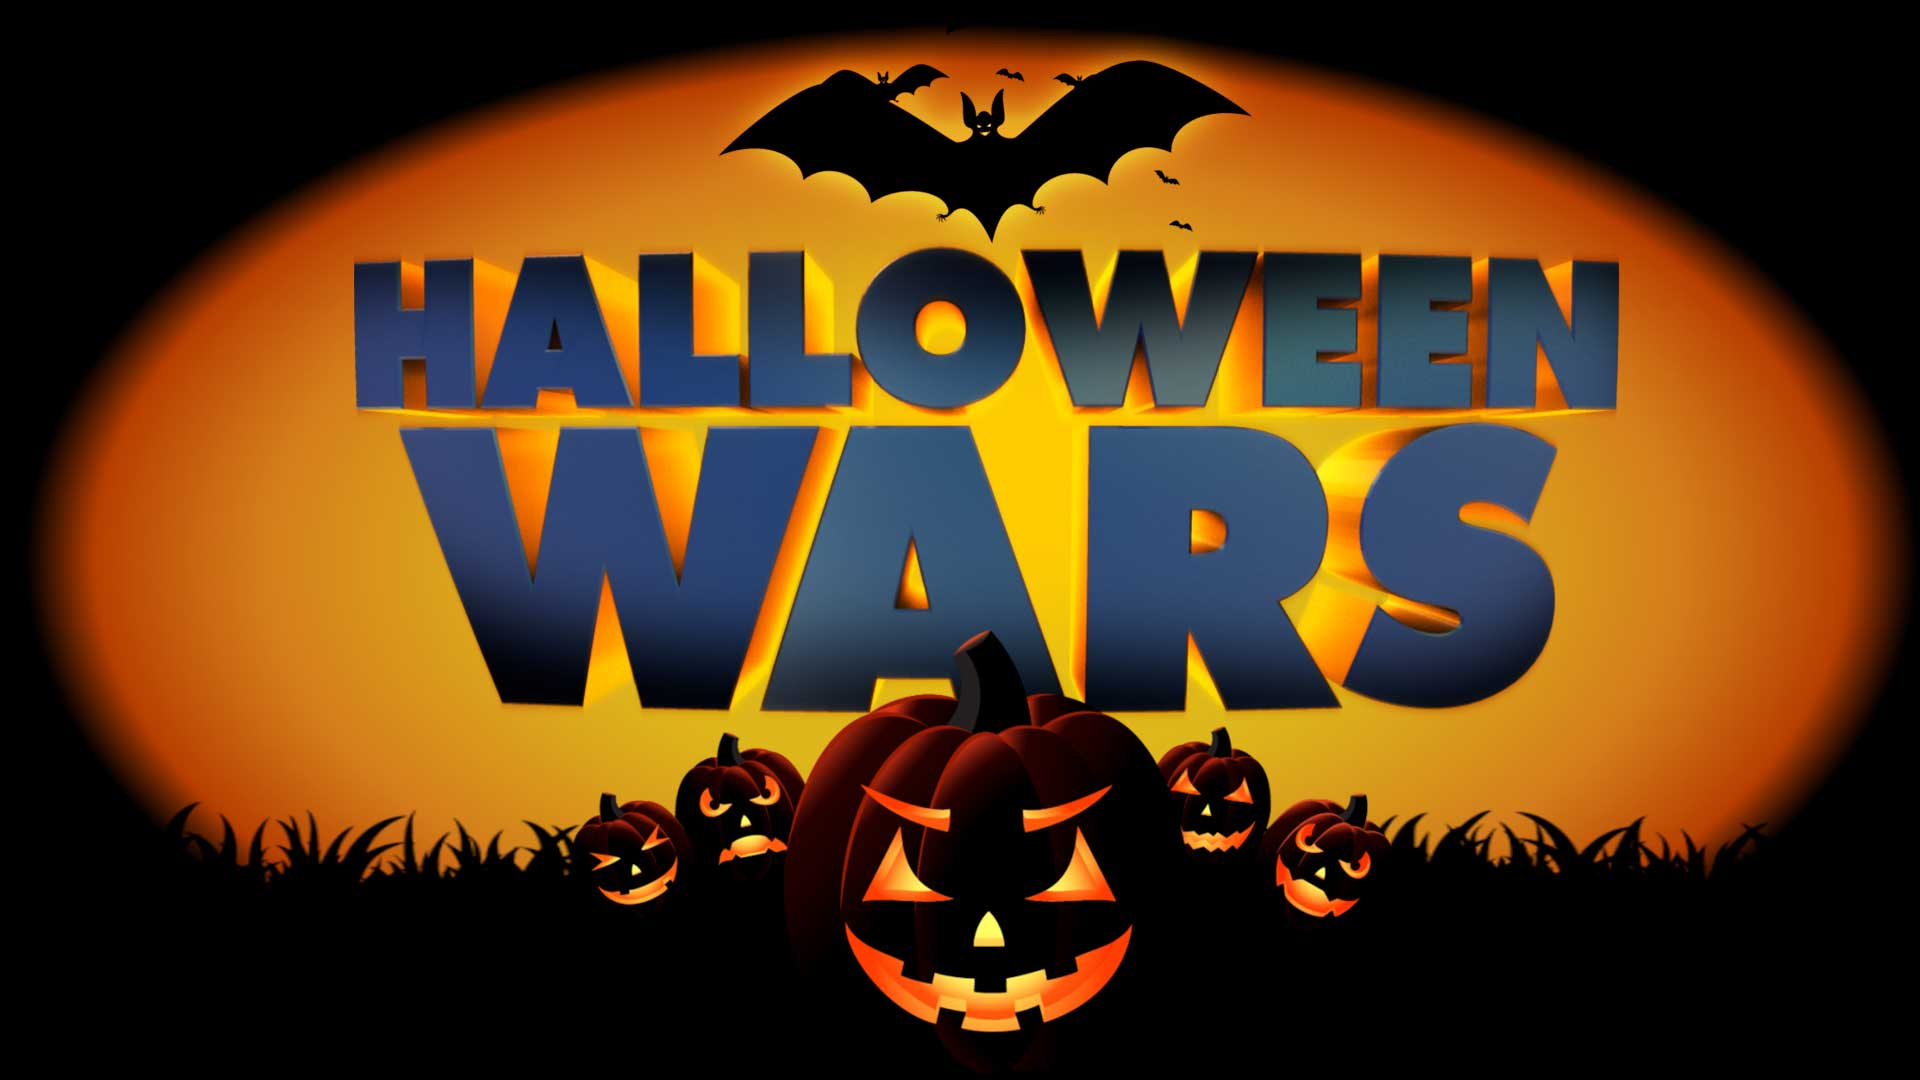 fn showlogo halloweenwars 1920x1080